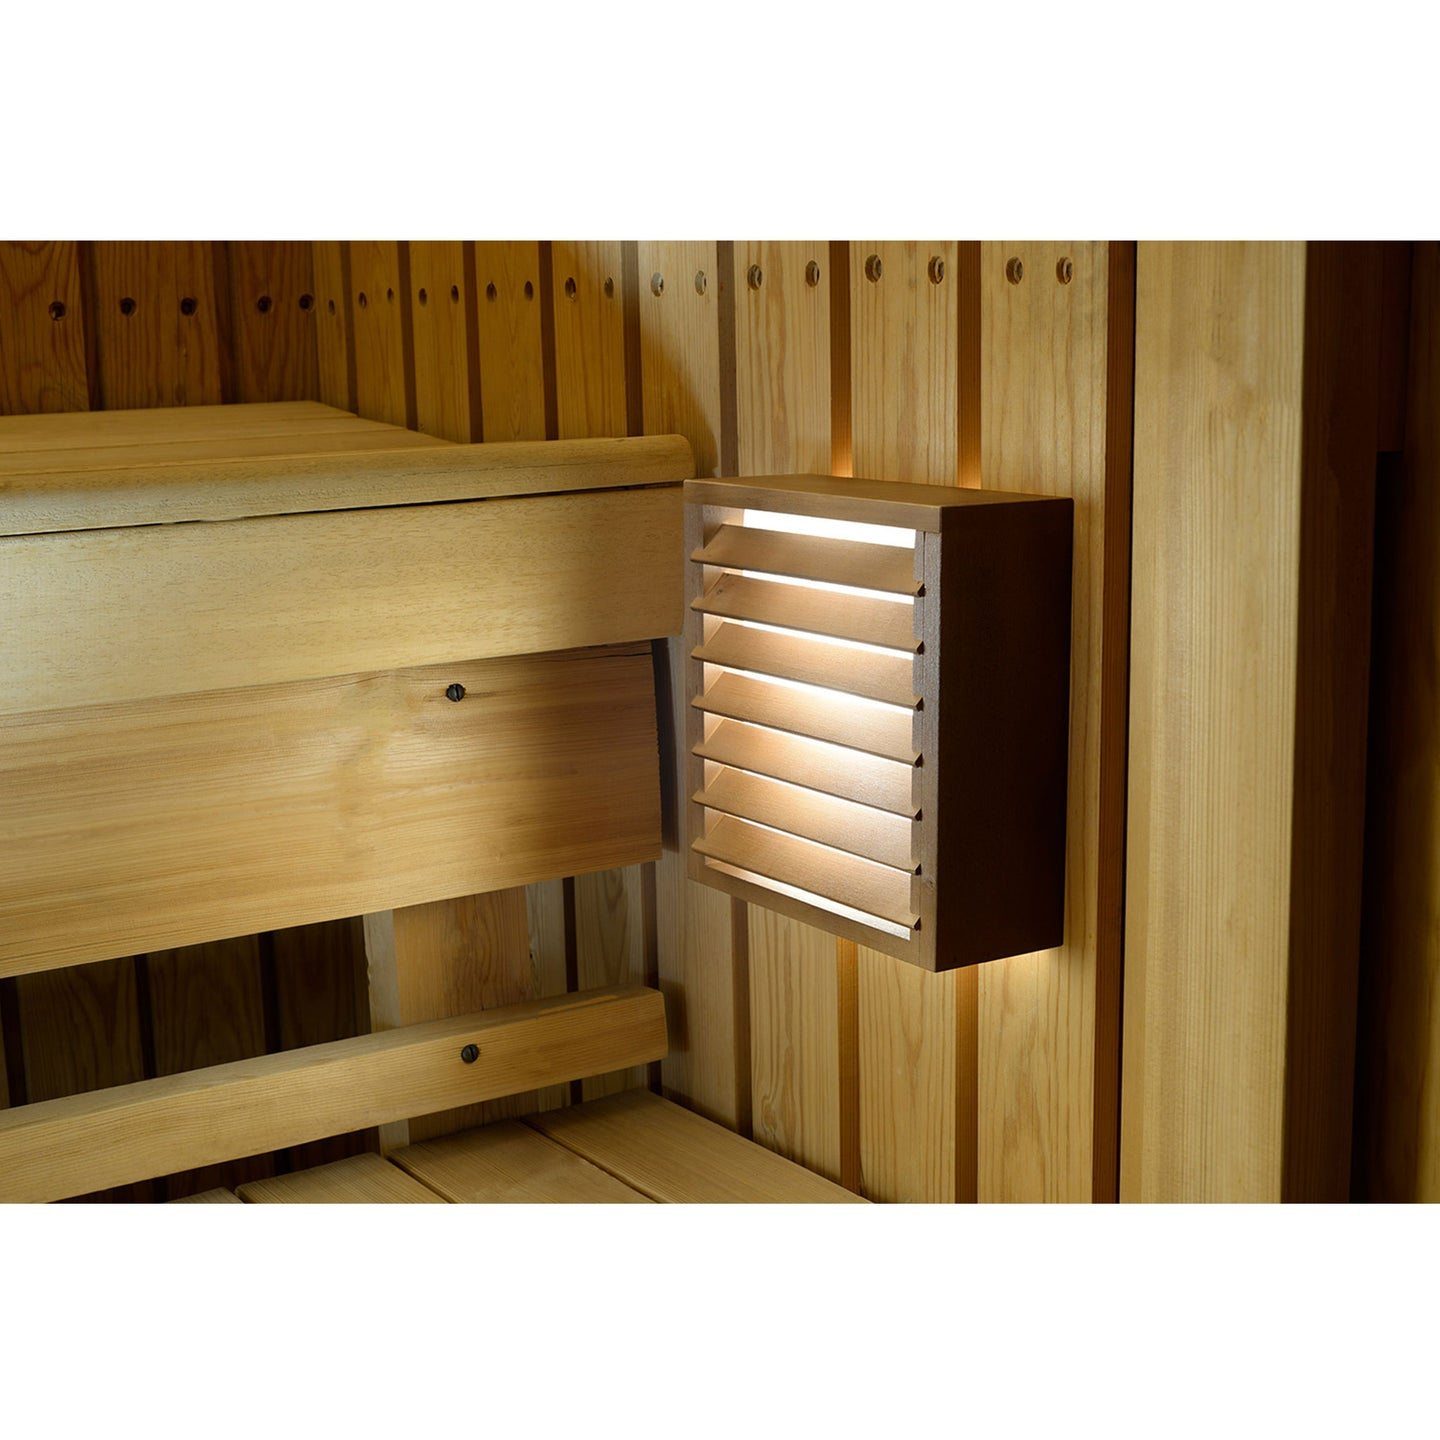 LEDIFY KUIVI LED light for sauna KUIVI dark Sauna Light Finnmark Sauna